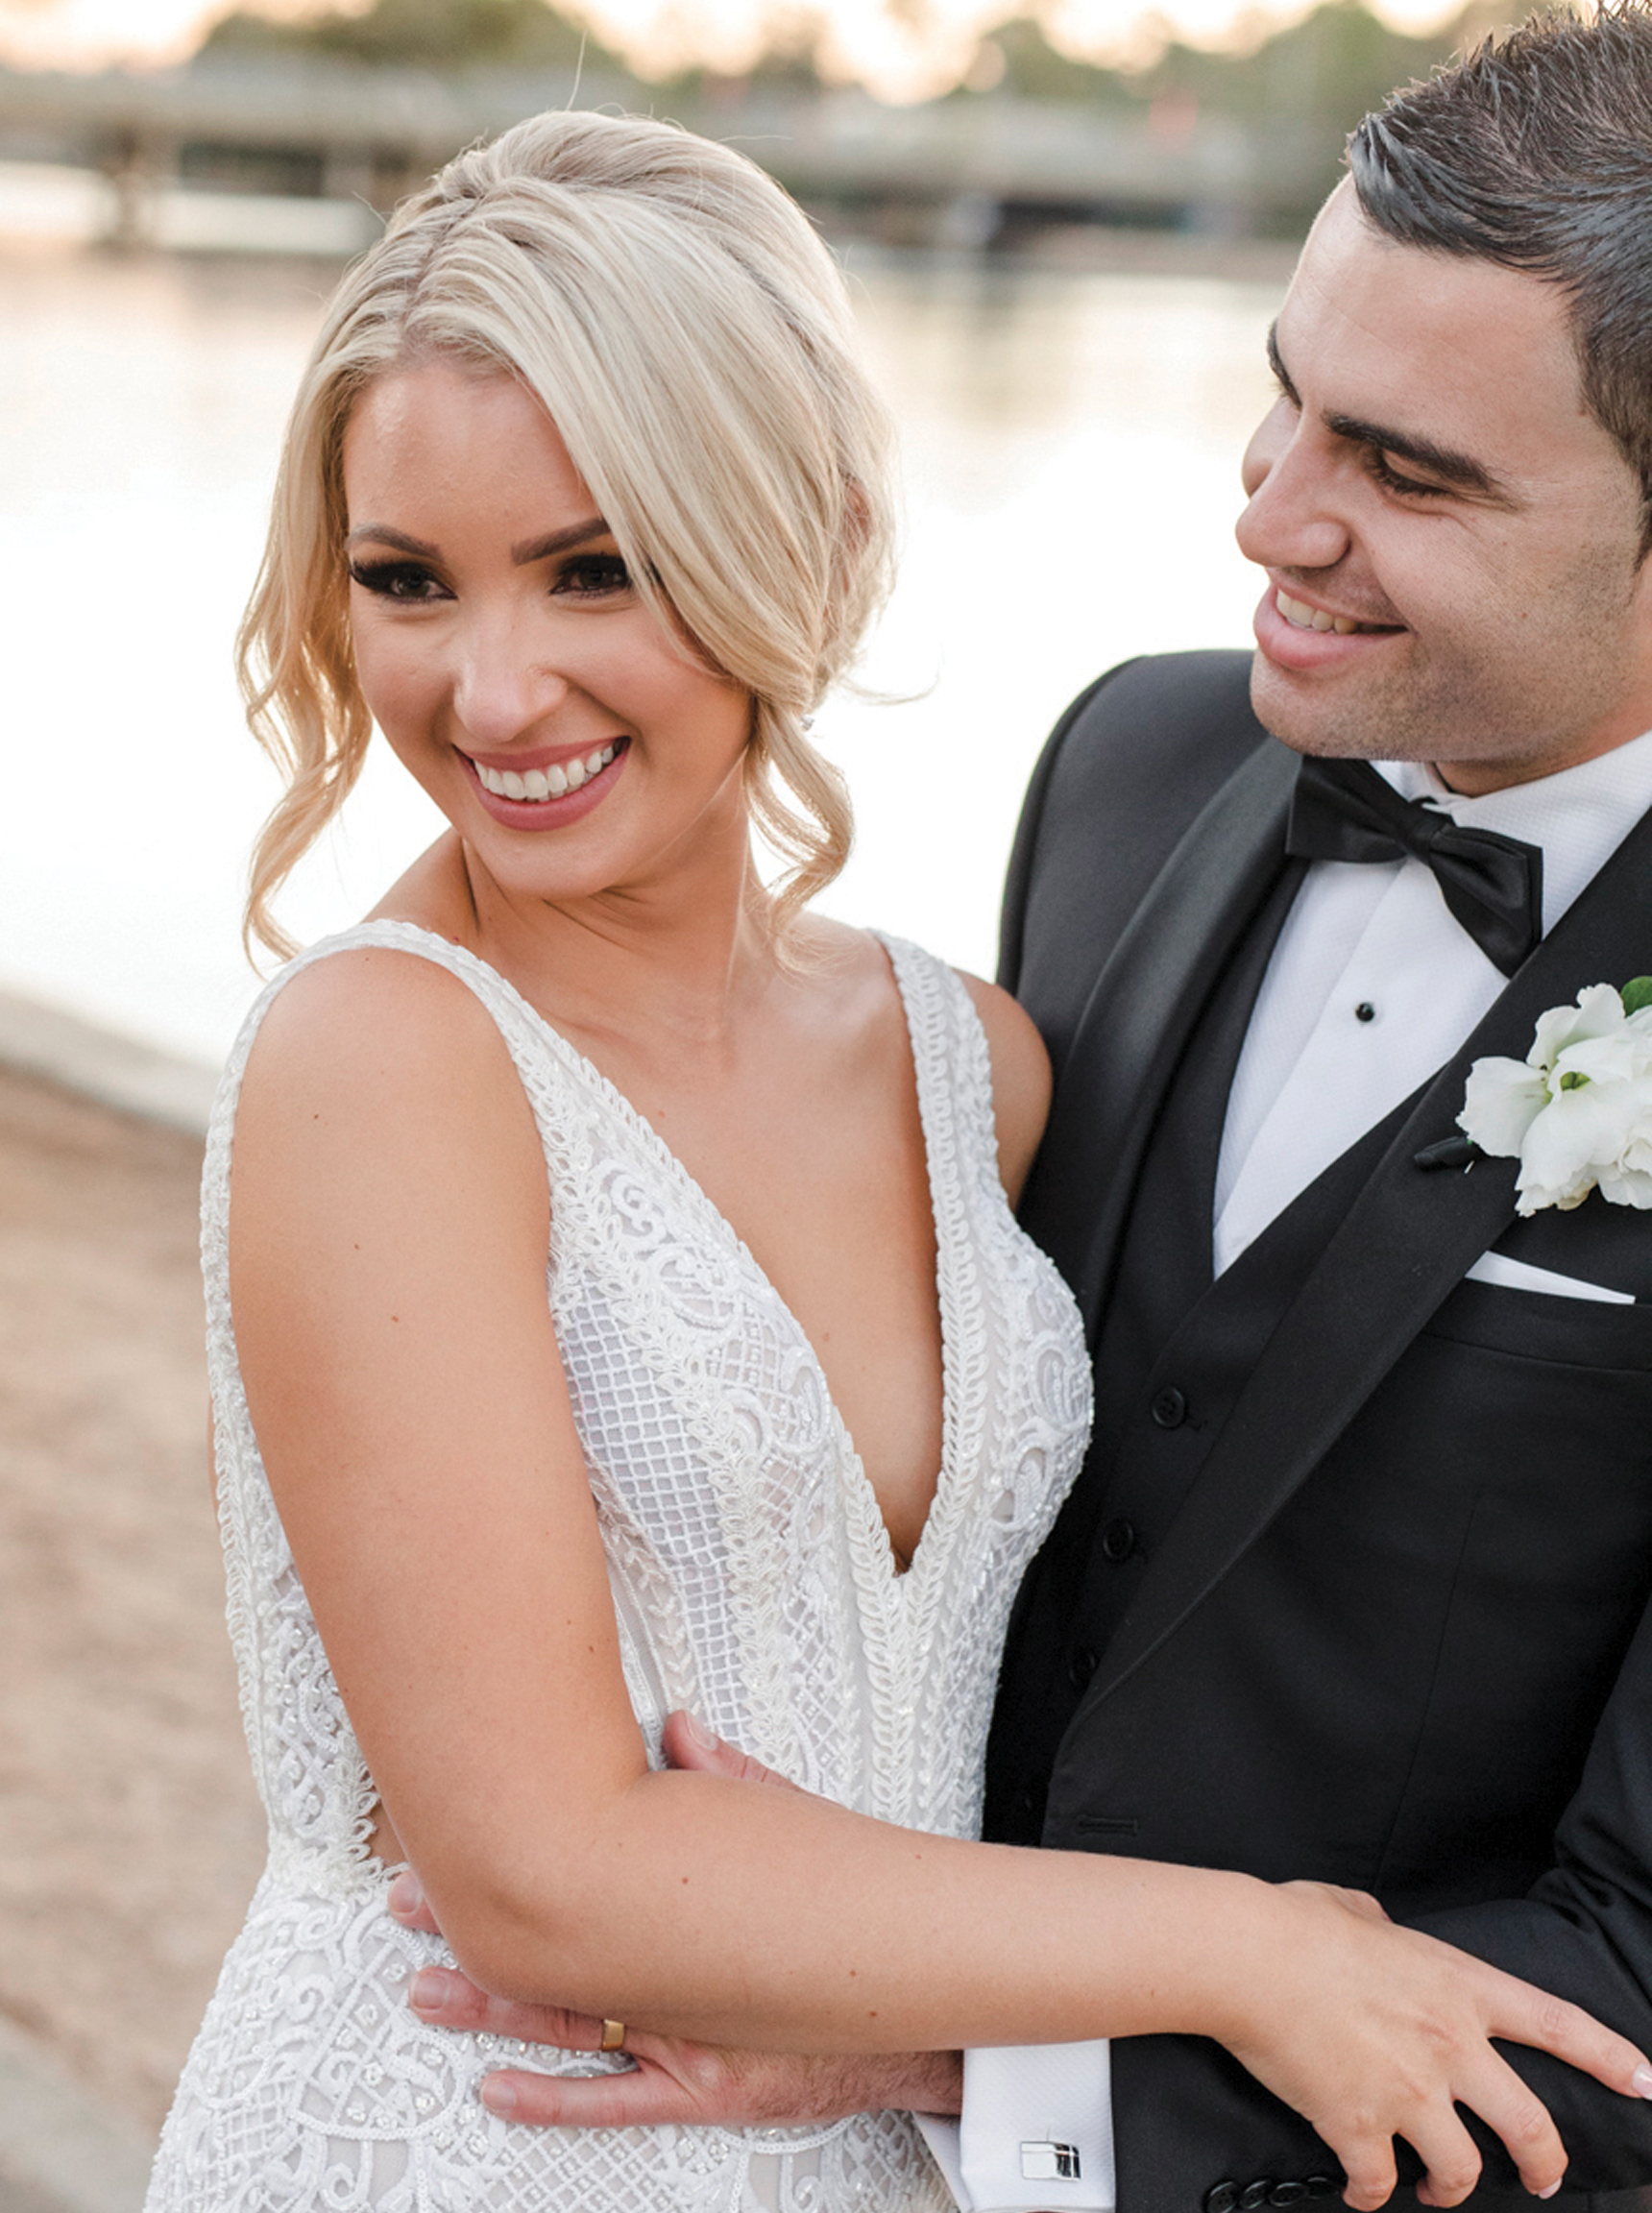 On behalf of Craig and myself, we would like to say thank you for everything you and your team did for me and Craig. We both appreciate it so much. You all were so professional and just so easy to work with .   Samantha & Craig